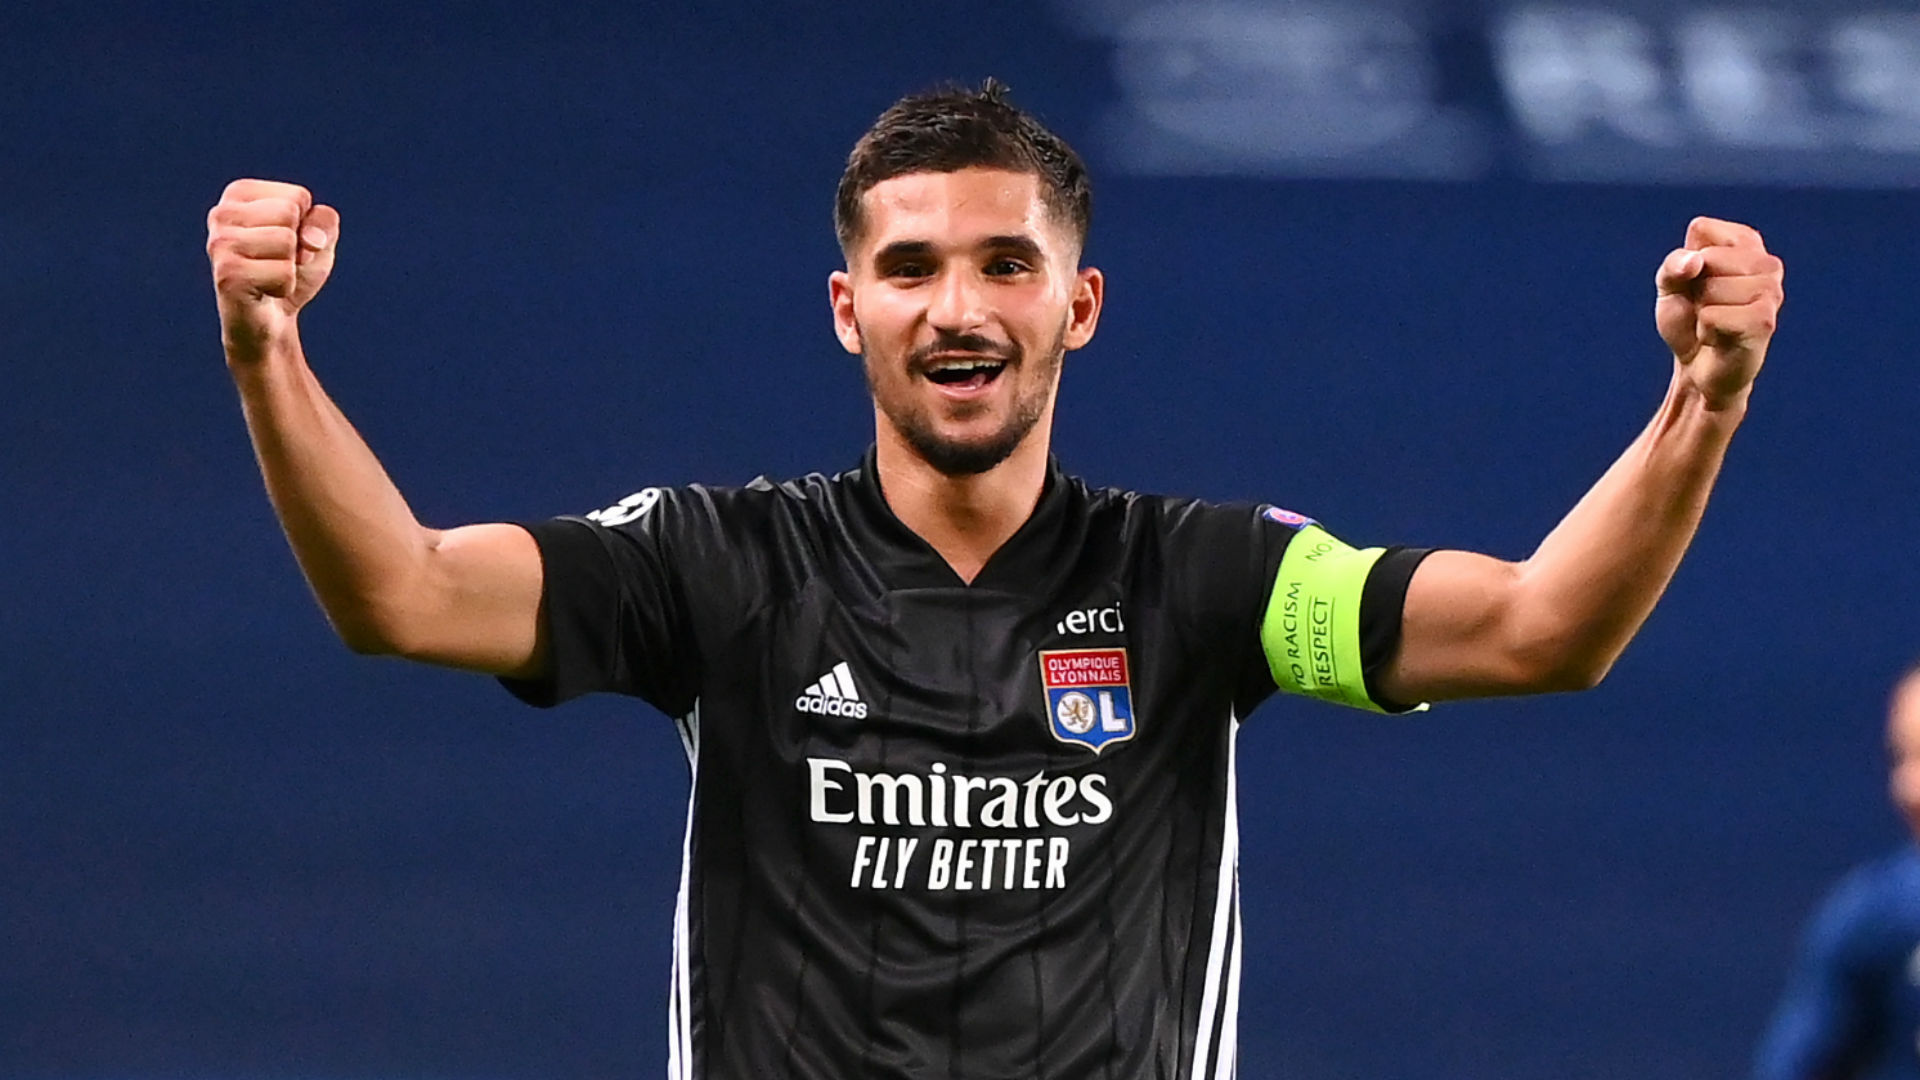 It's my club - Aouar happy to stay at Lyon despite Arsenal links